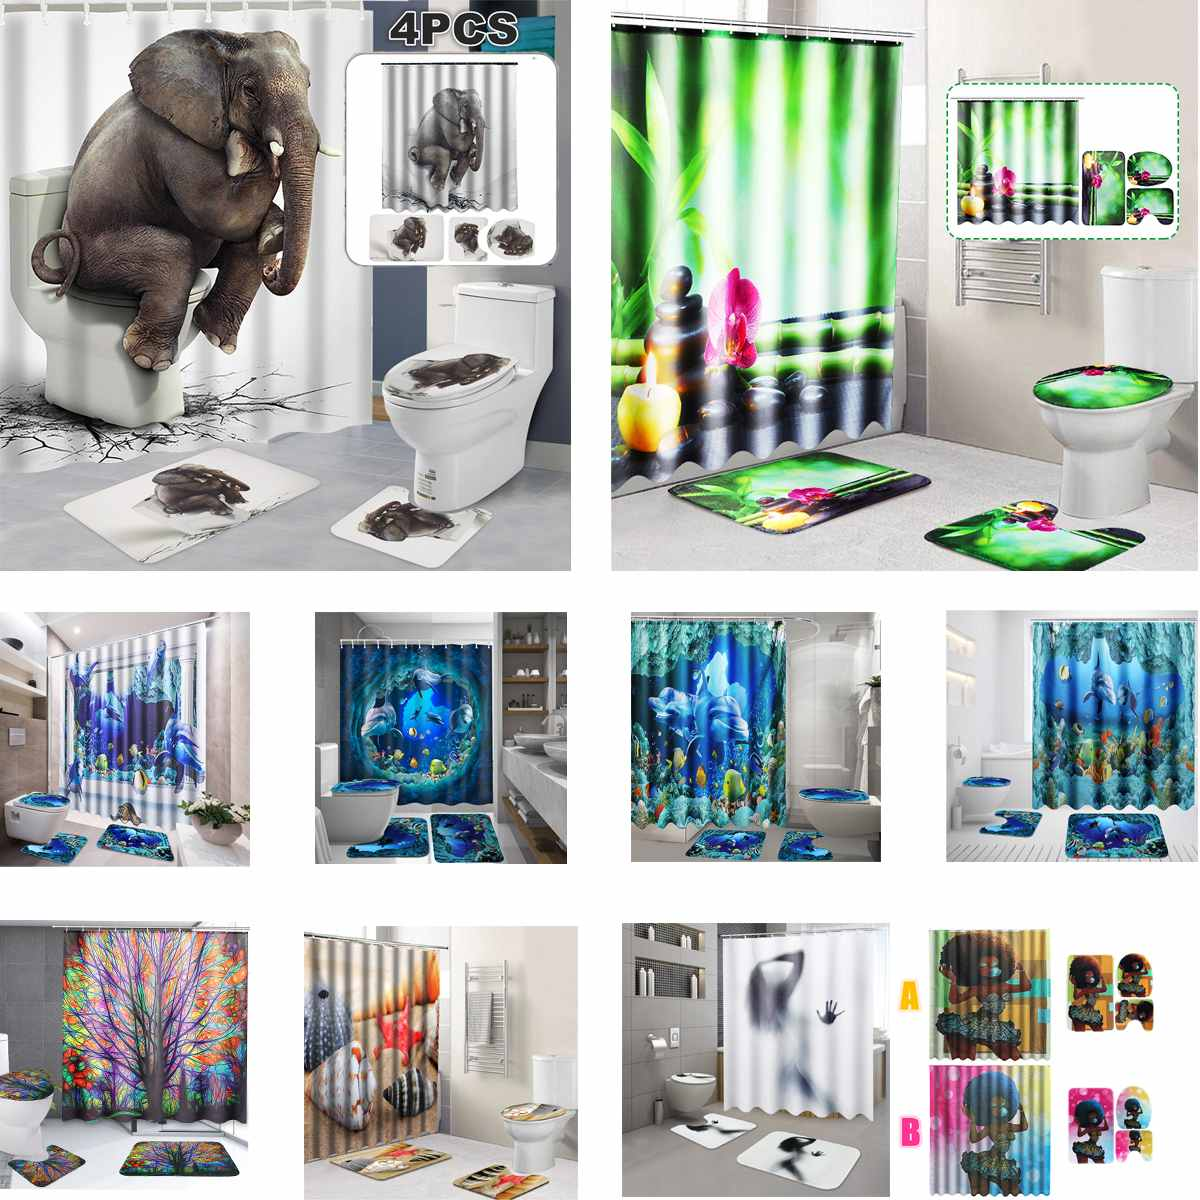 Shower Curtains Nice Charmhome White Swans And Roses Pattern Mildew Resistant Polyester Fabric Shower Curtain Set With Hooks Bathroom Accessories Warm And Windproof Home & Garden